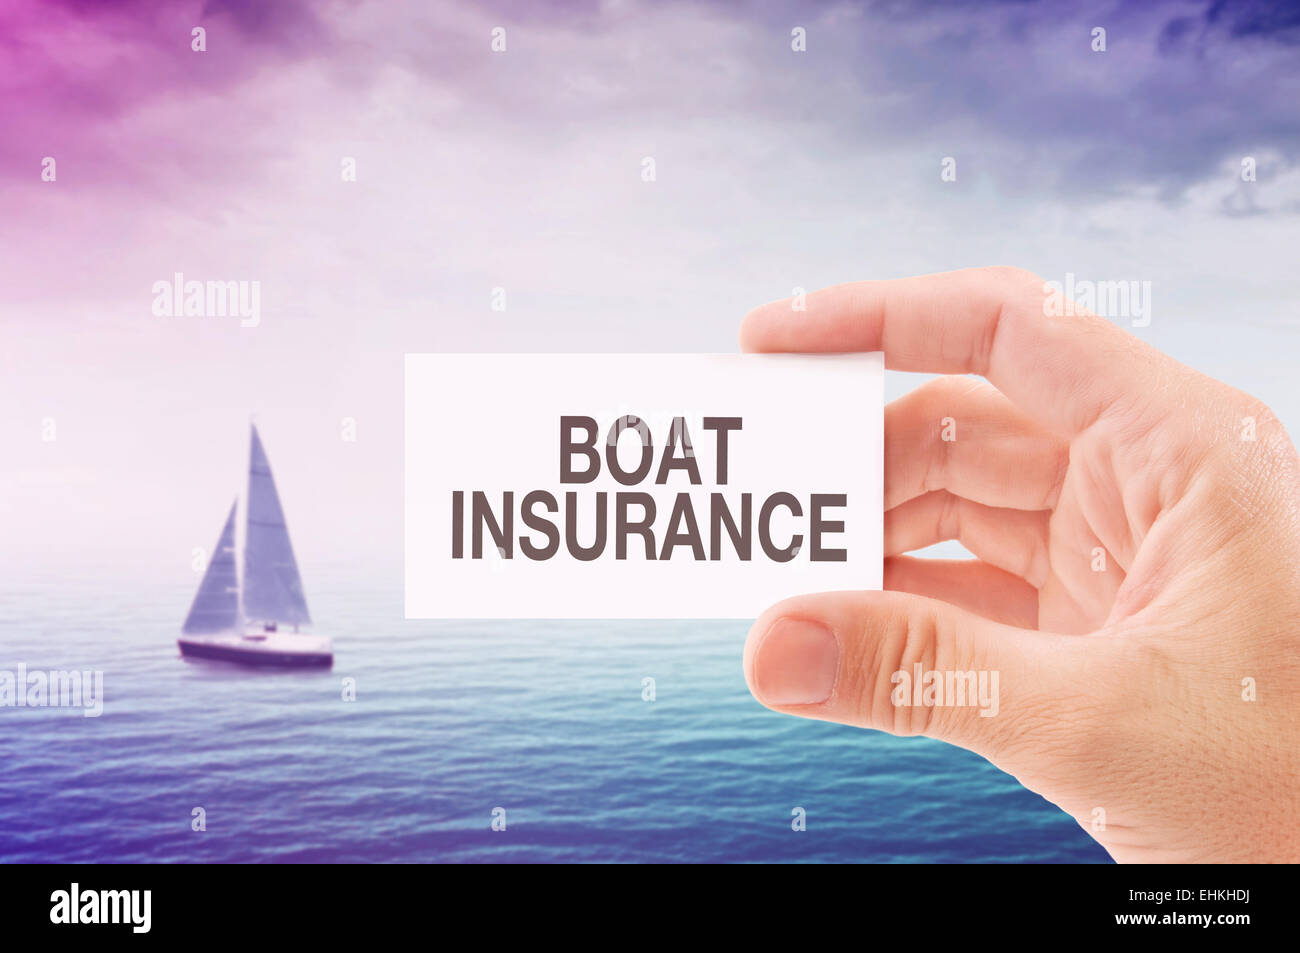 Boat Insurance Agent Holding Business Card, Sailing Boat on Open Sea in Background. - Stock Image